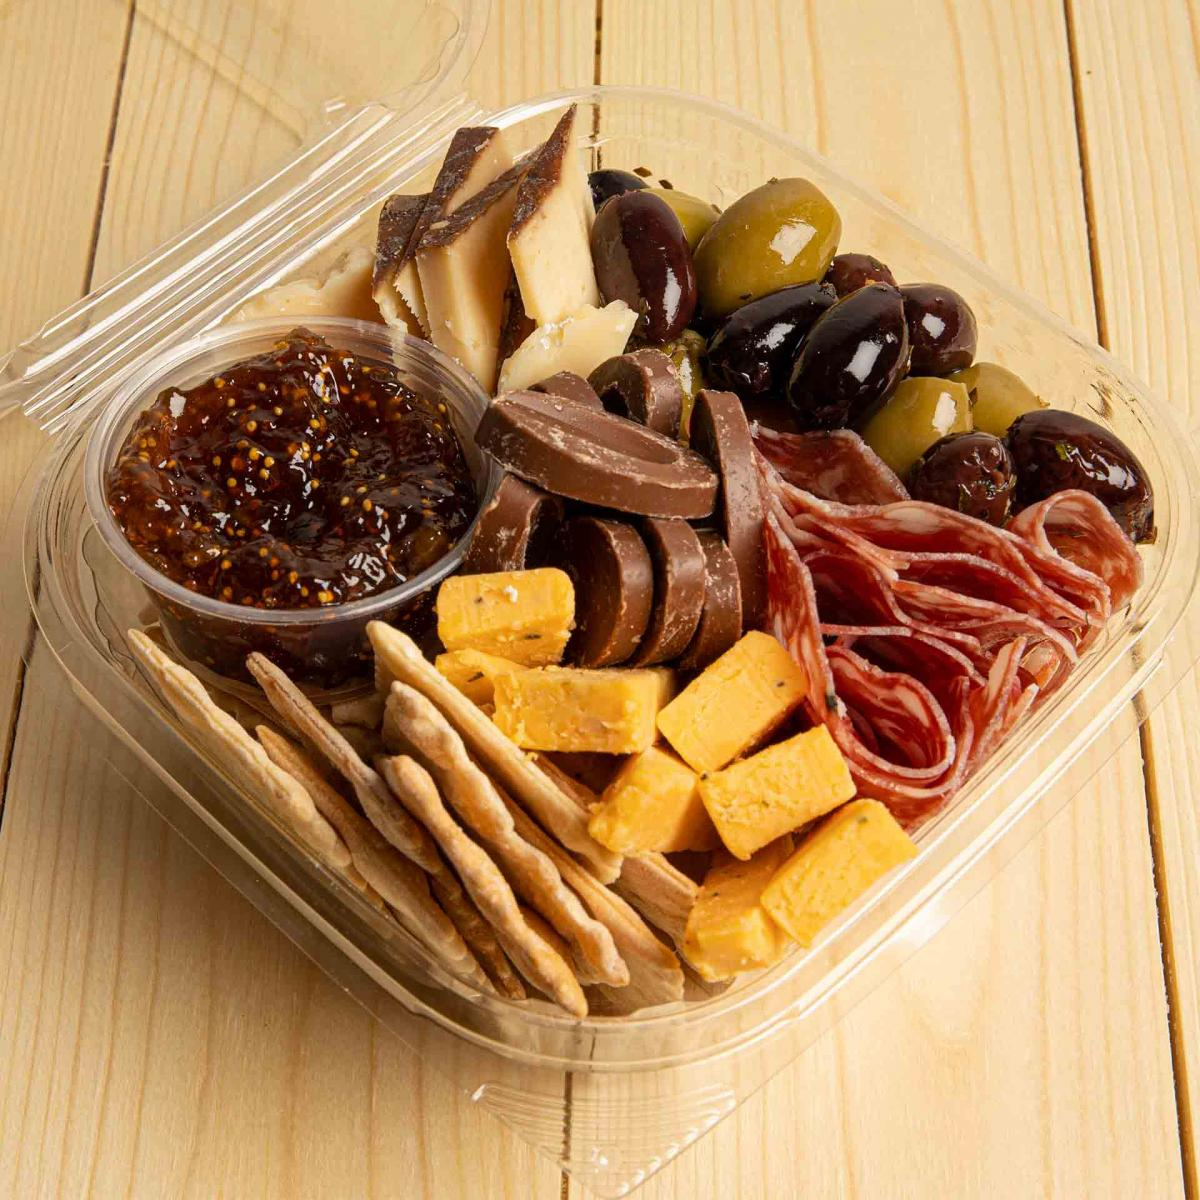 Artisanal Charcuterie & Cheese Box